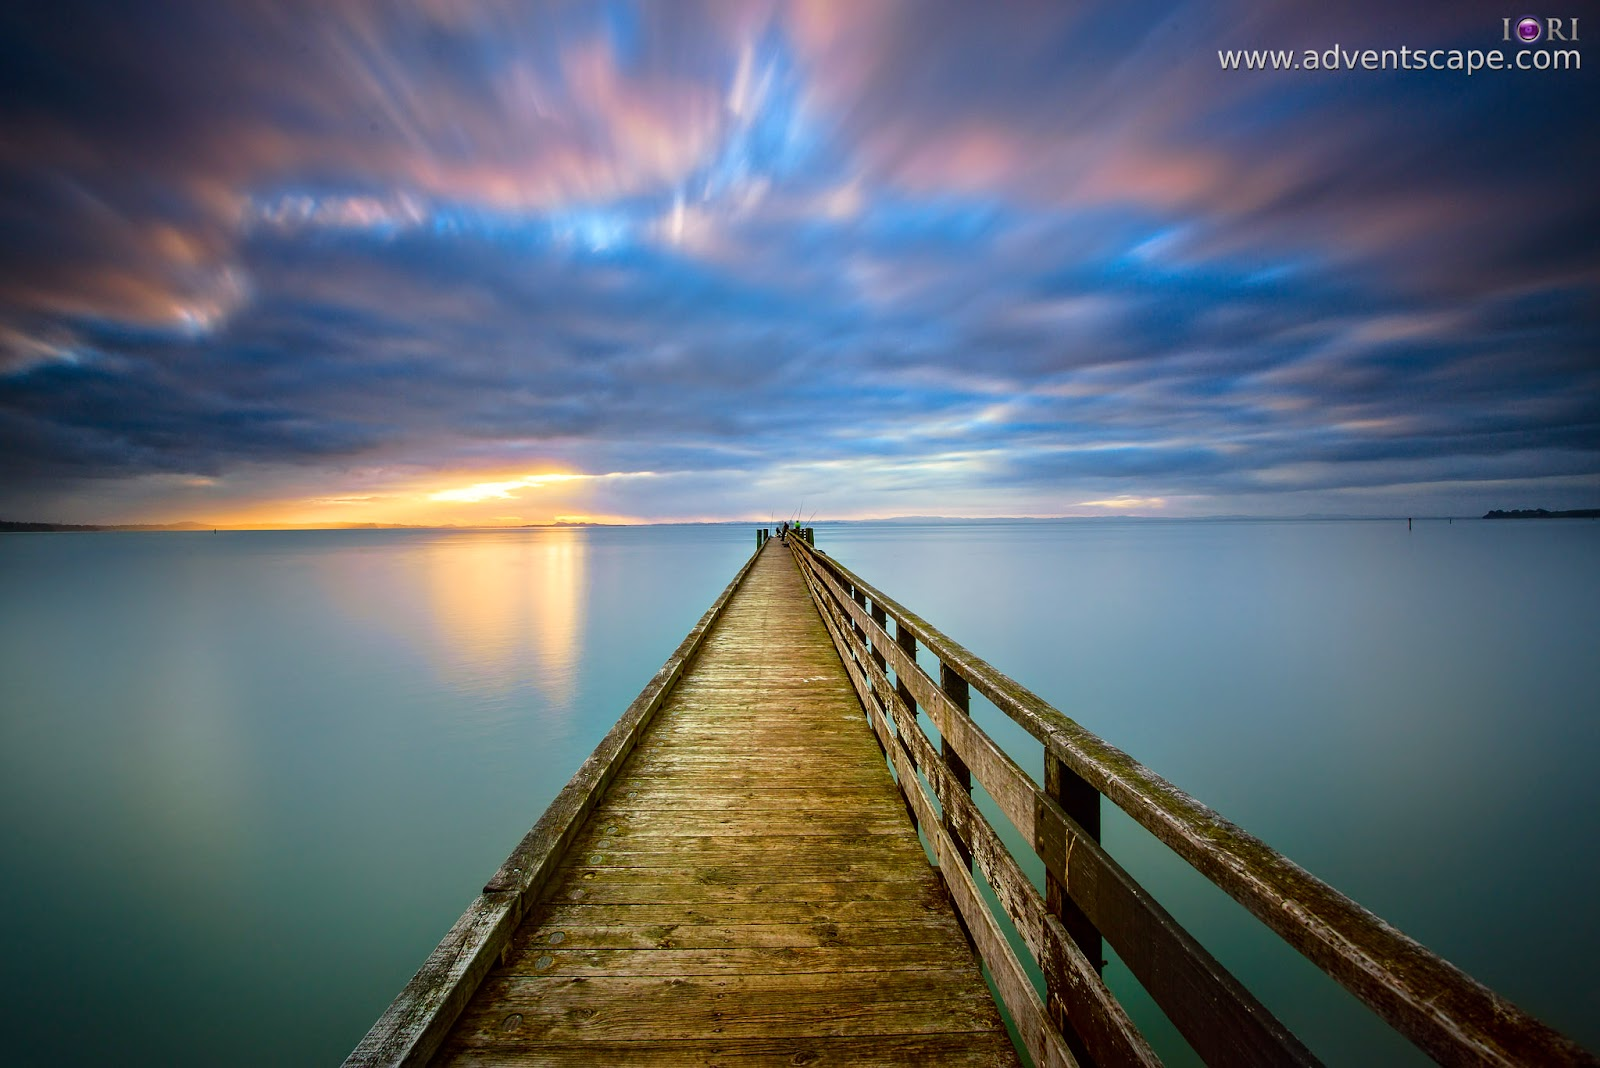 Philip Avellana, Australian Landscape Photographer, adventscape, ND, Neutral Density, filter, 0.9, Lee, solid, Rev, reverse grad, gnd, singh ray, Cornwallis, jetty, NZ, New Zealand, north island